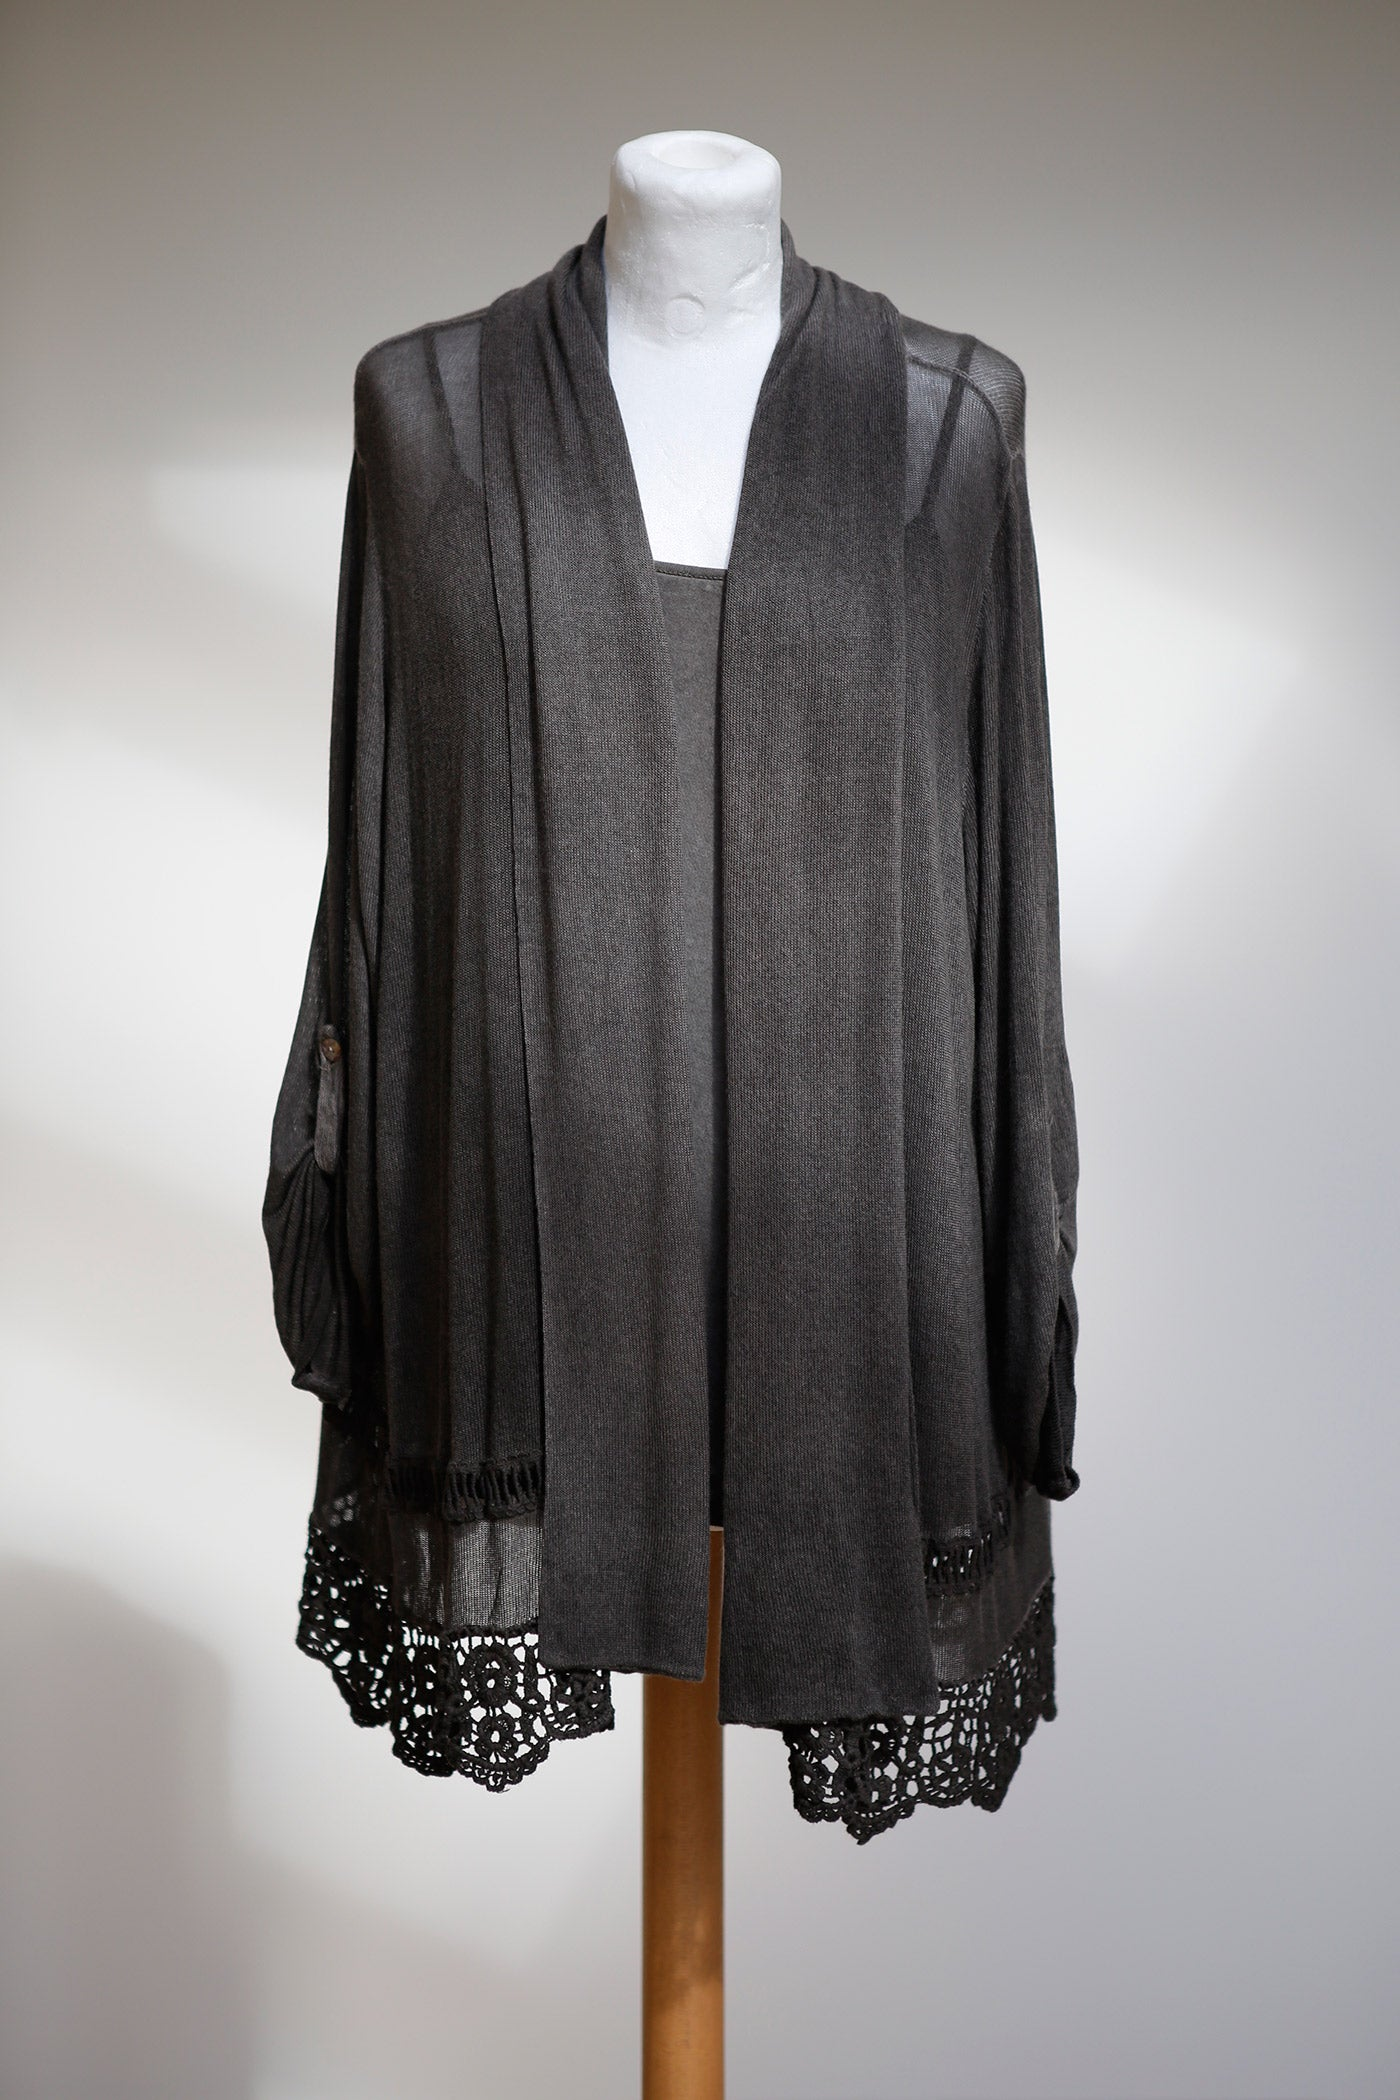 LONG LINE LACE HEMMED ASYMMETRIC CARDIGAN WITH INTEGRAL CAMISOLE